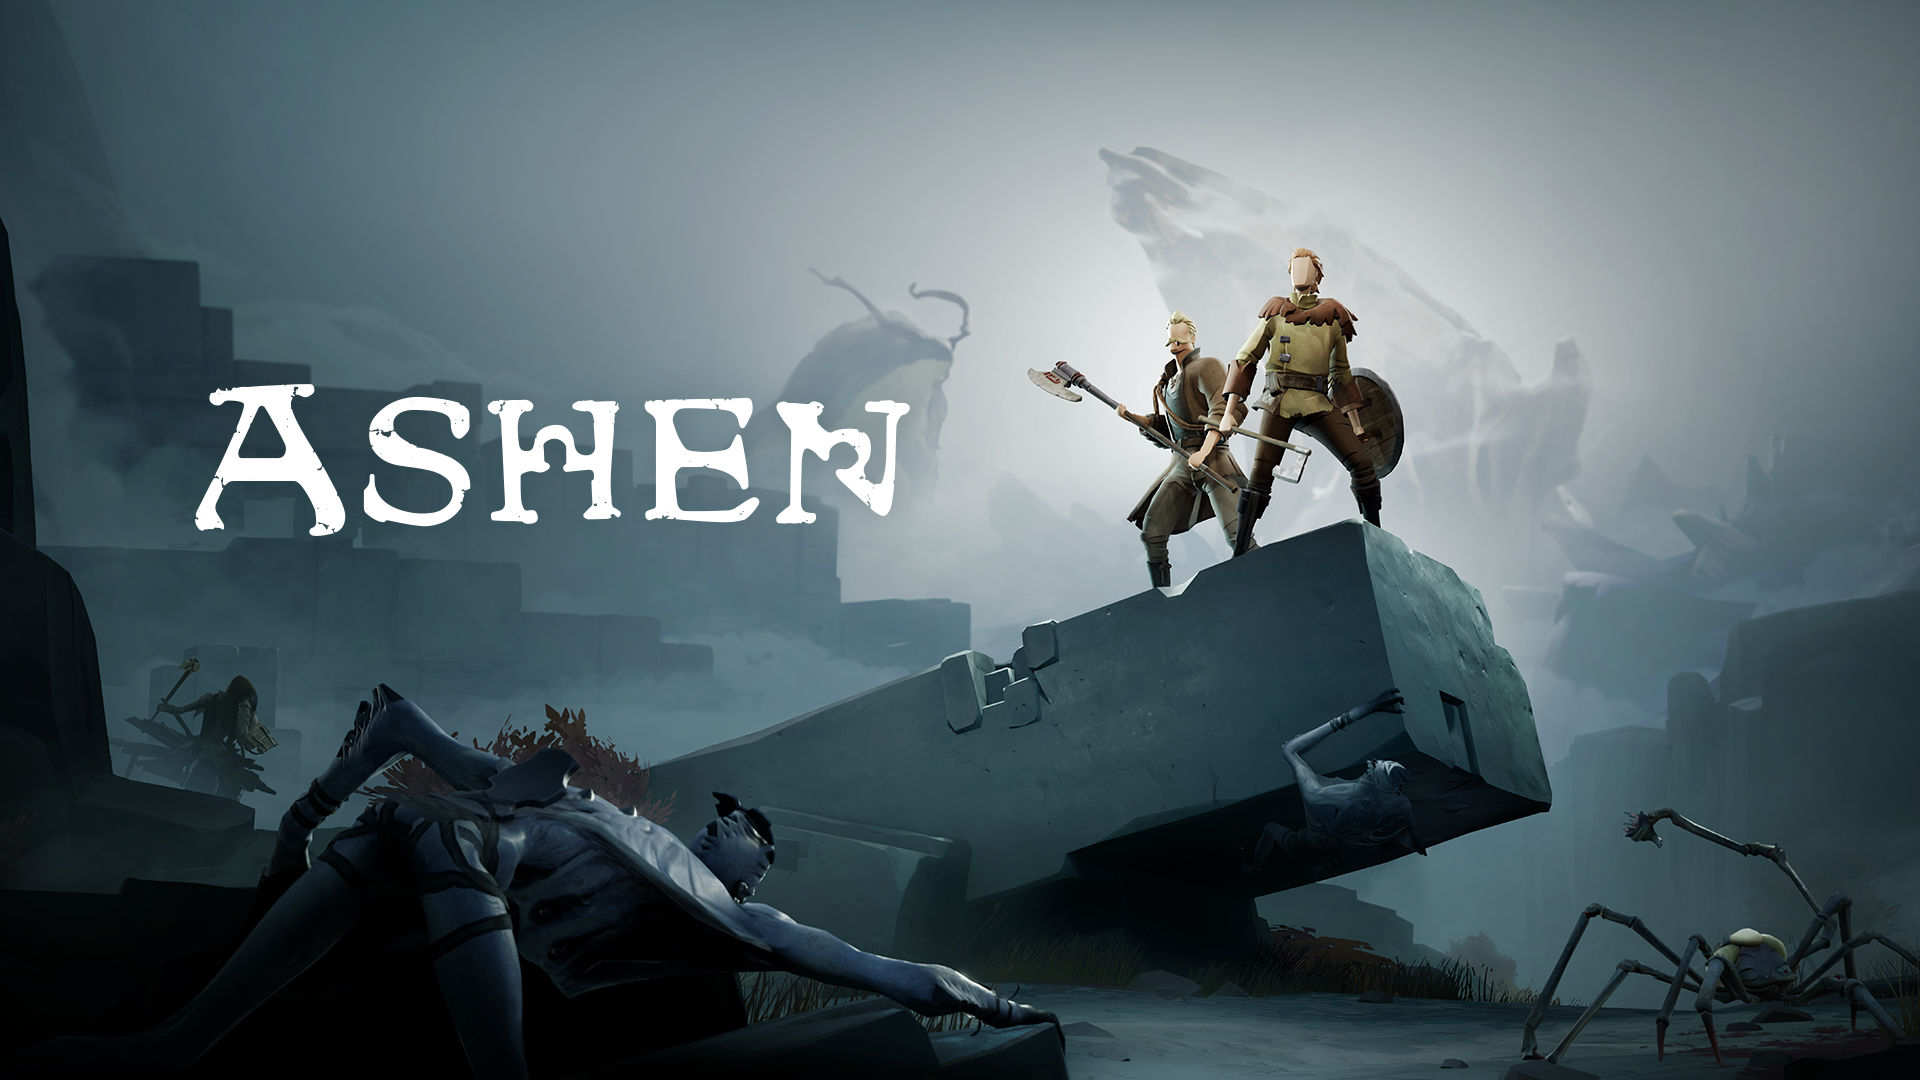 Ashen RPG A44 Dark souls like game